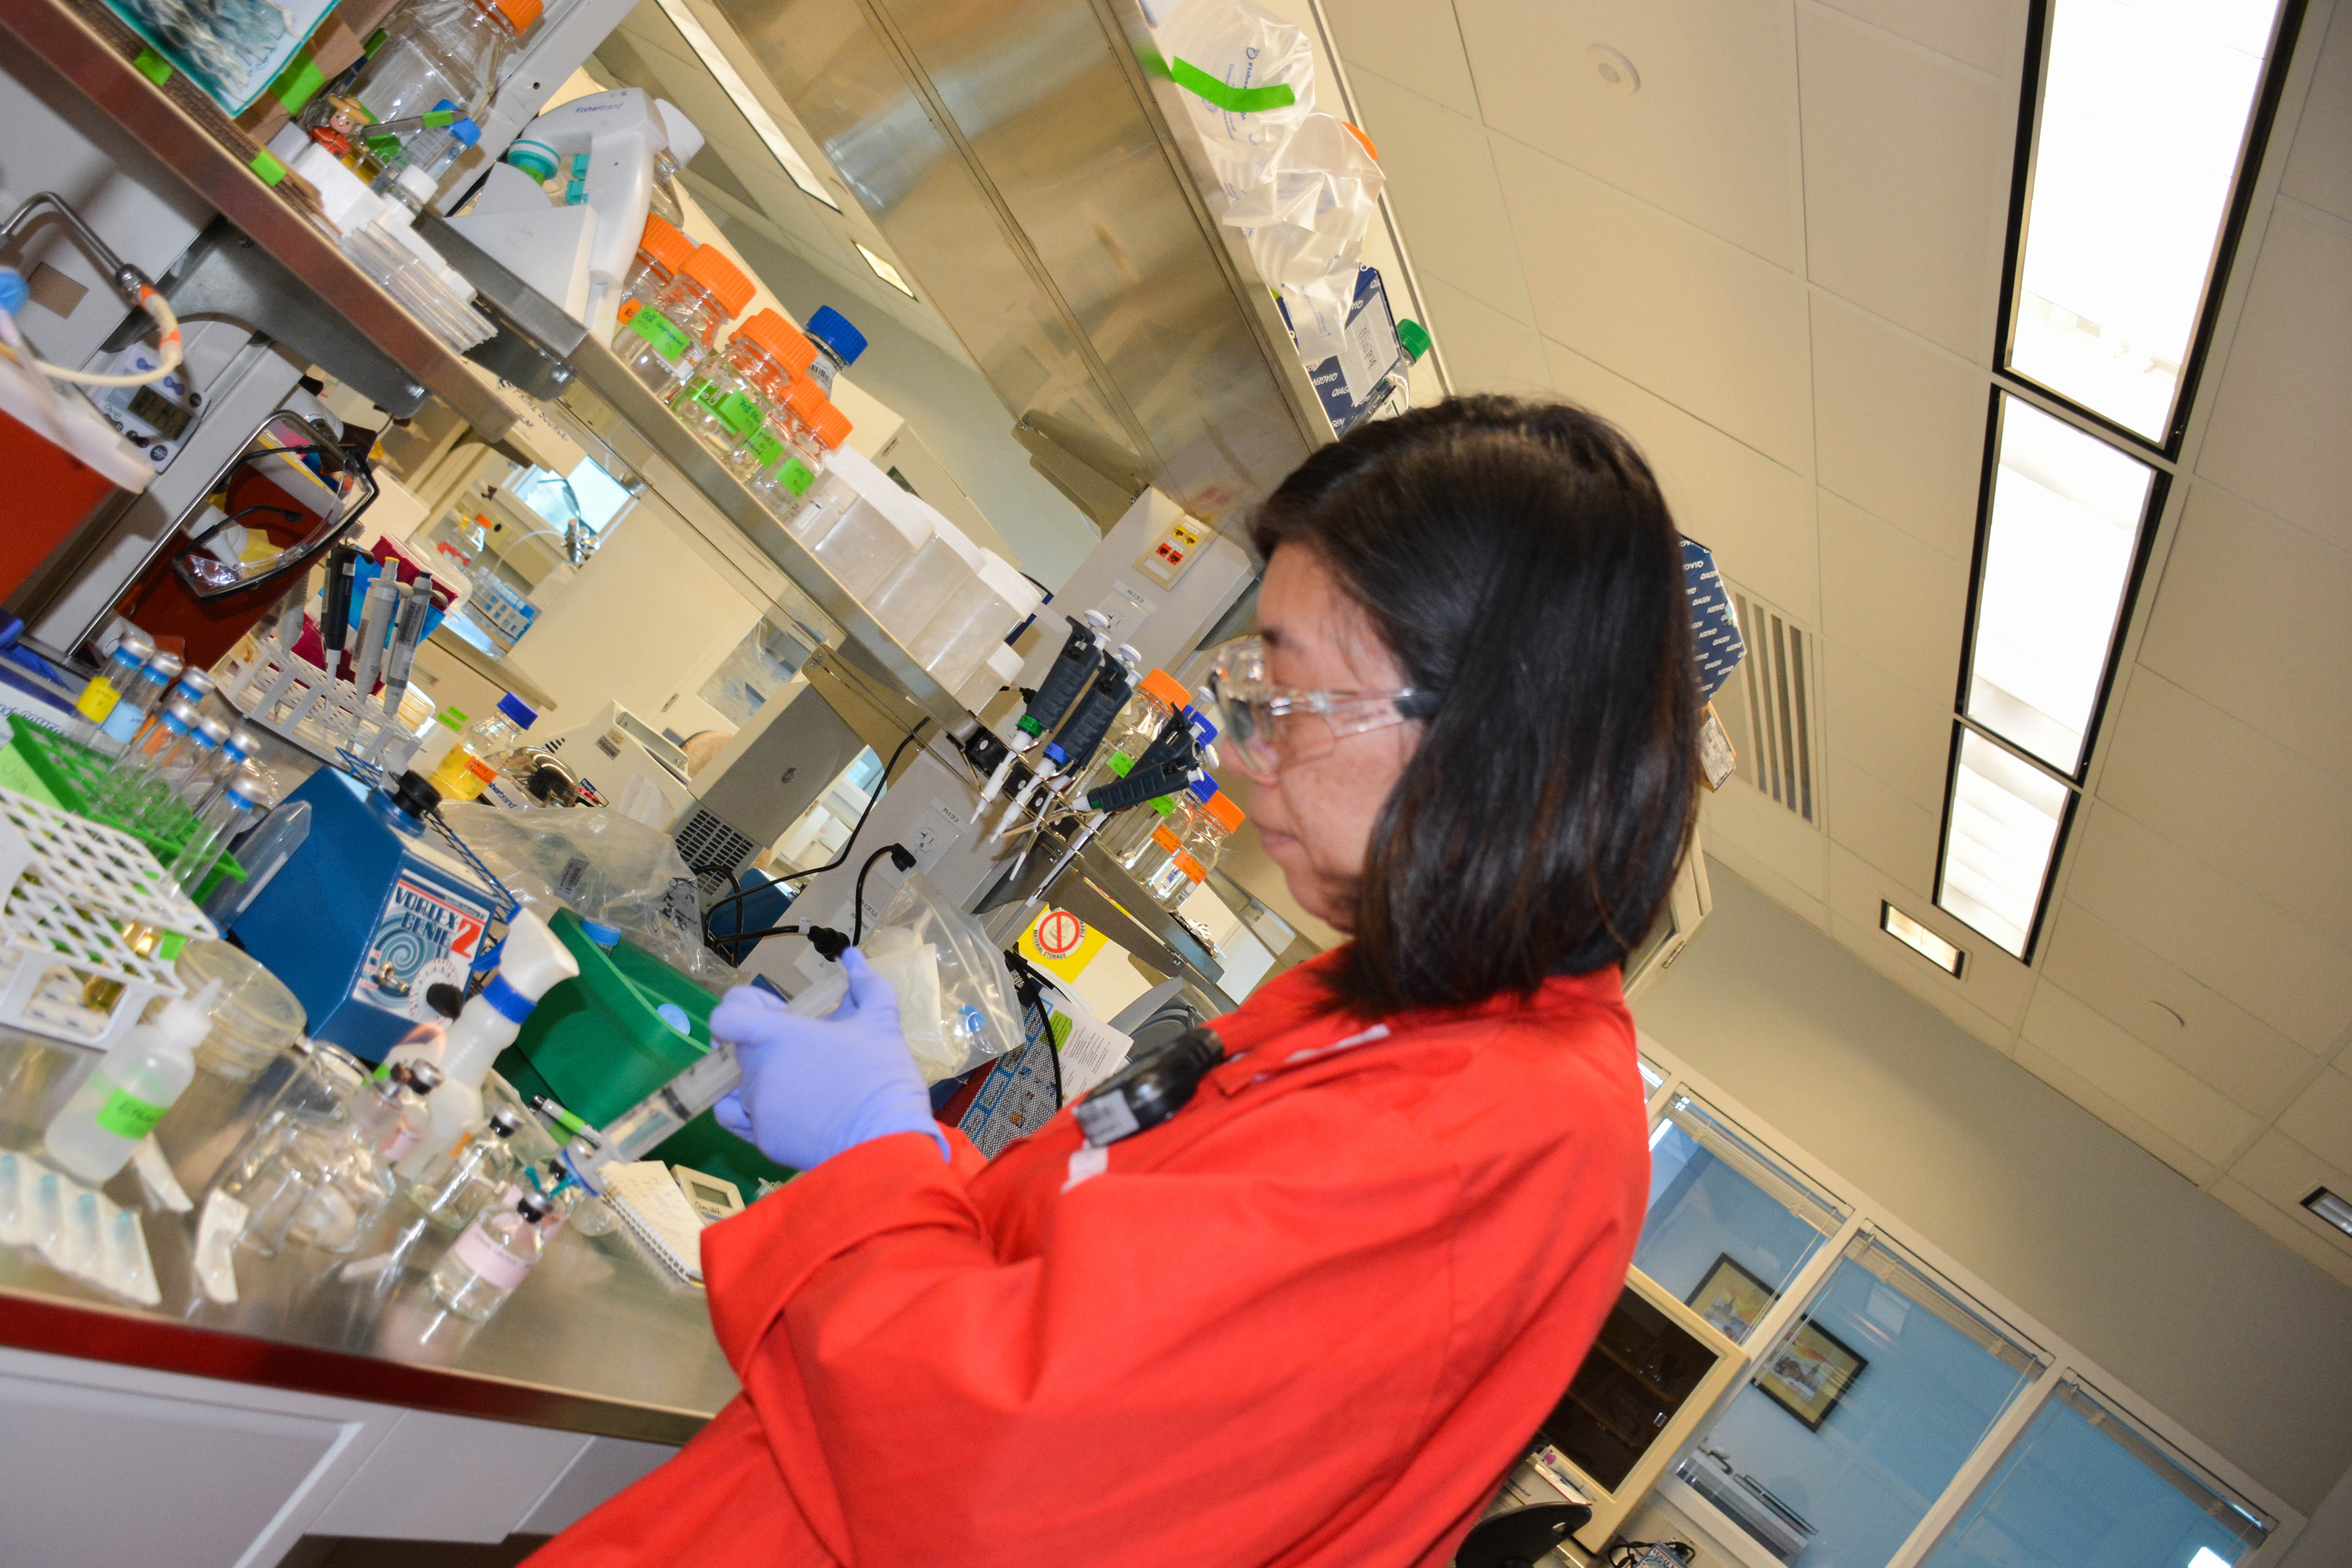 Ching Leang, a molecular biologist at LanzaTech. LanzaTech has been a participant in the Unreasonable Impact accelerator program.